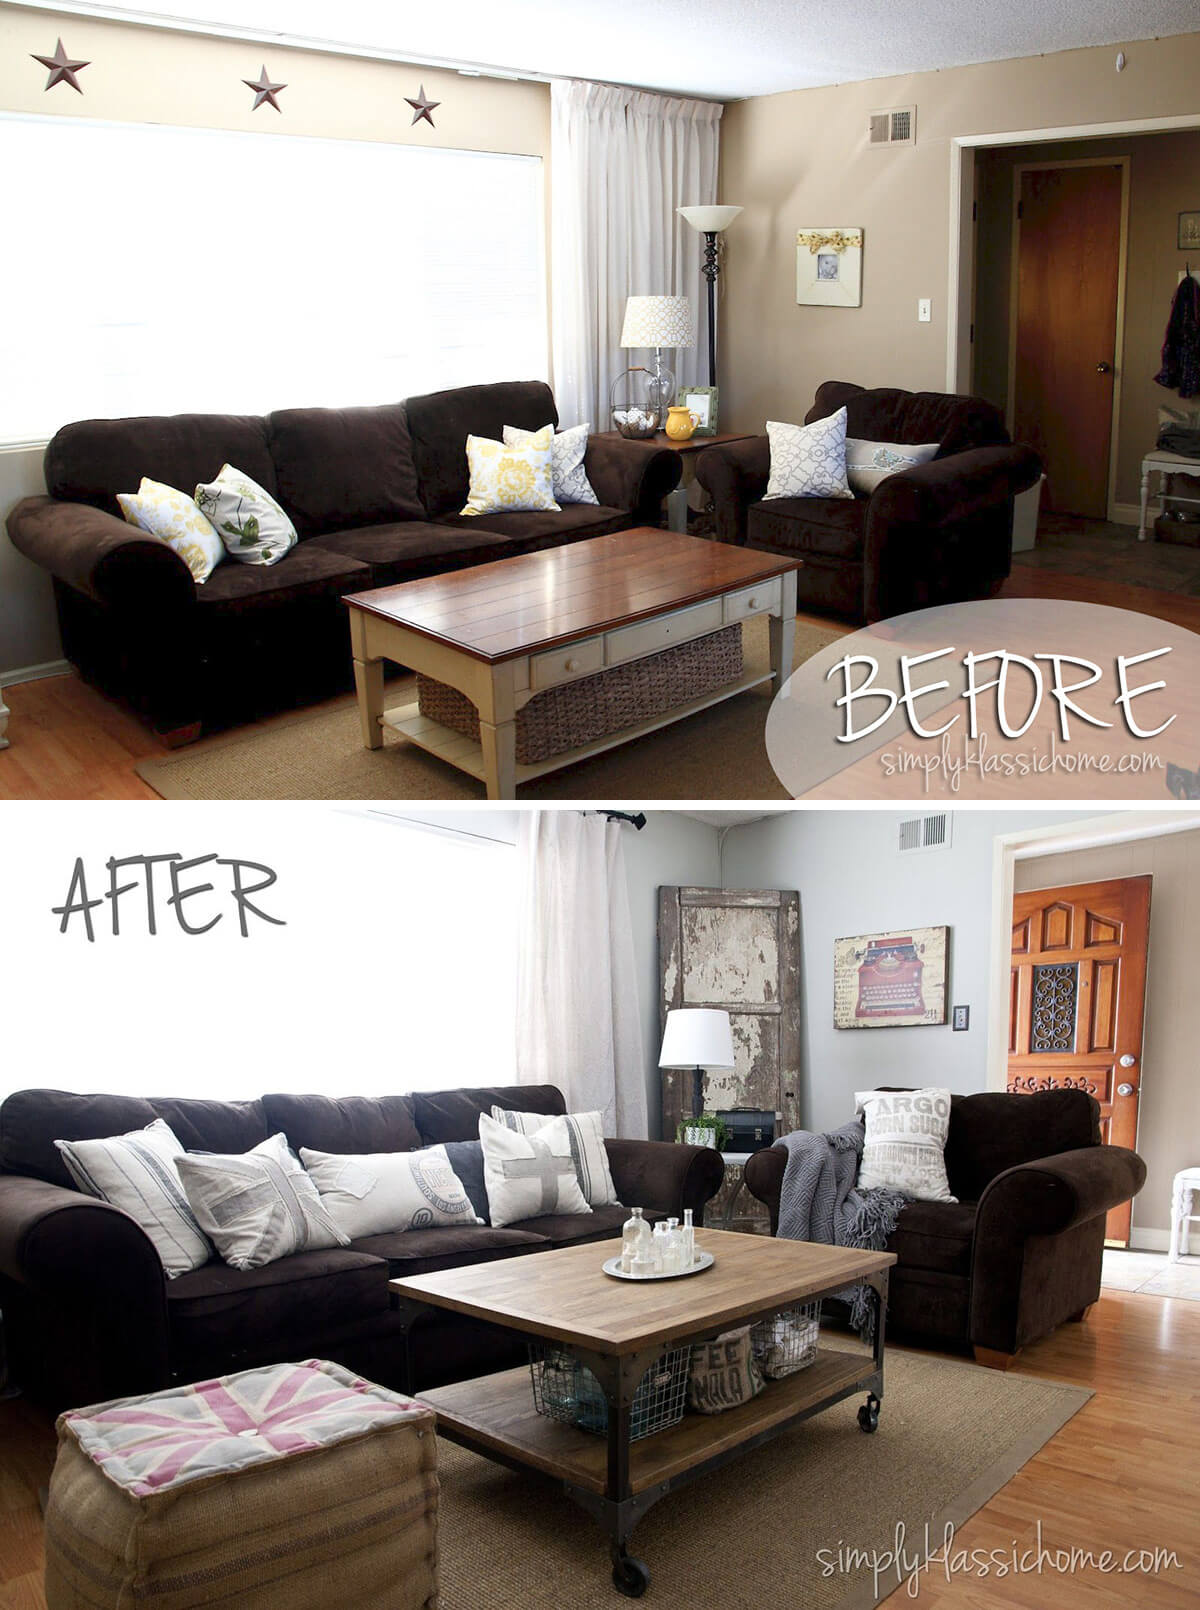 living room decorating ideas cheap best way to decorate a small 26 budget friendly makeover for 2019 16 little changes big impact